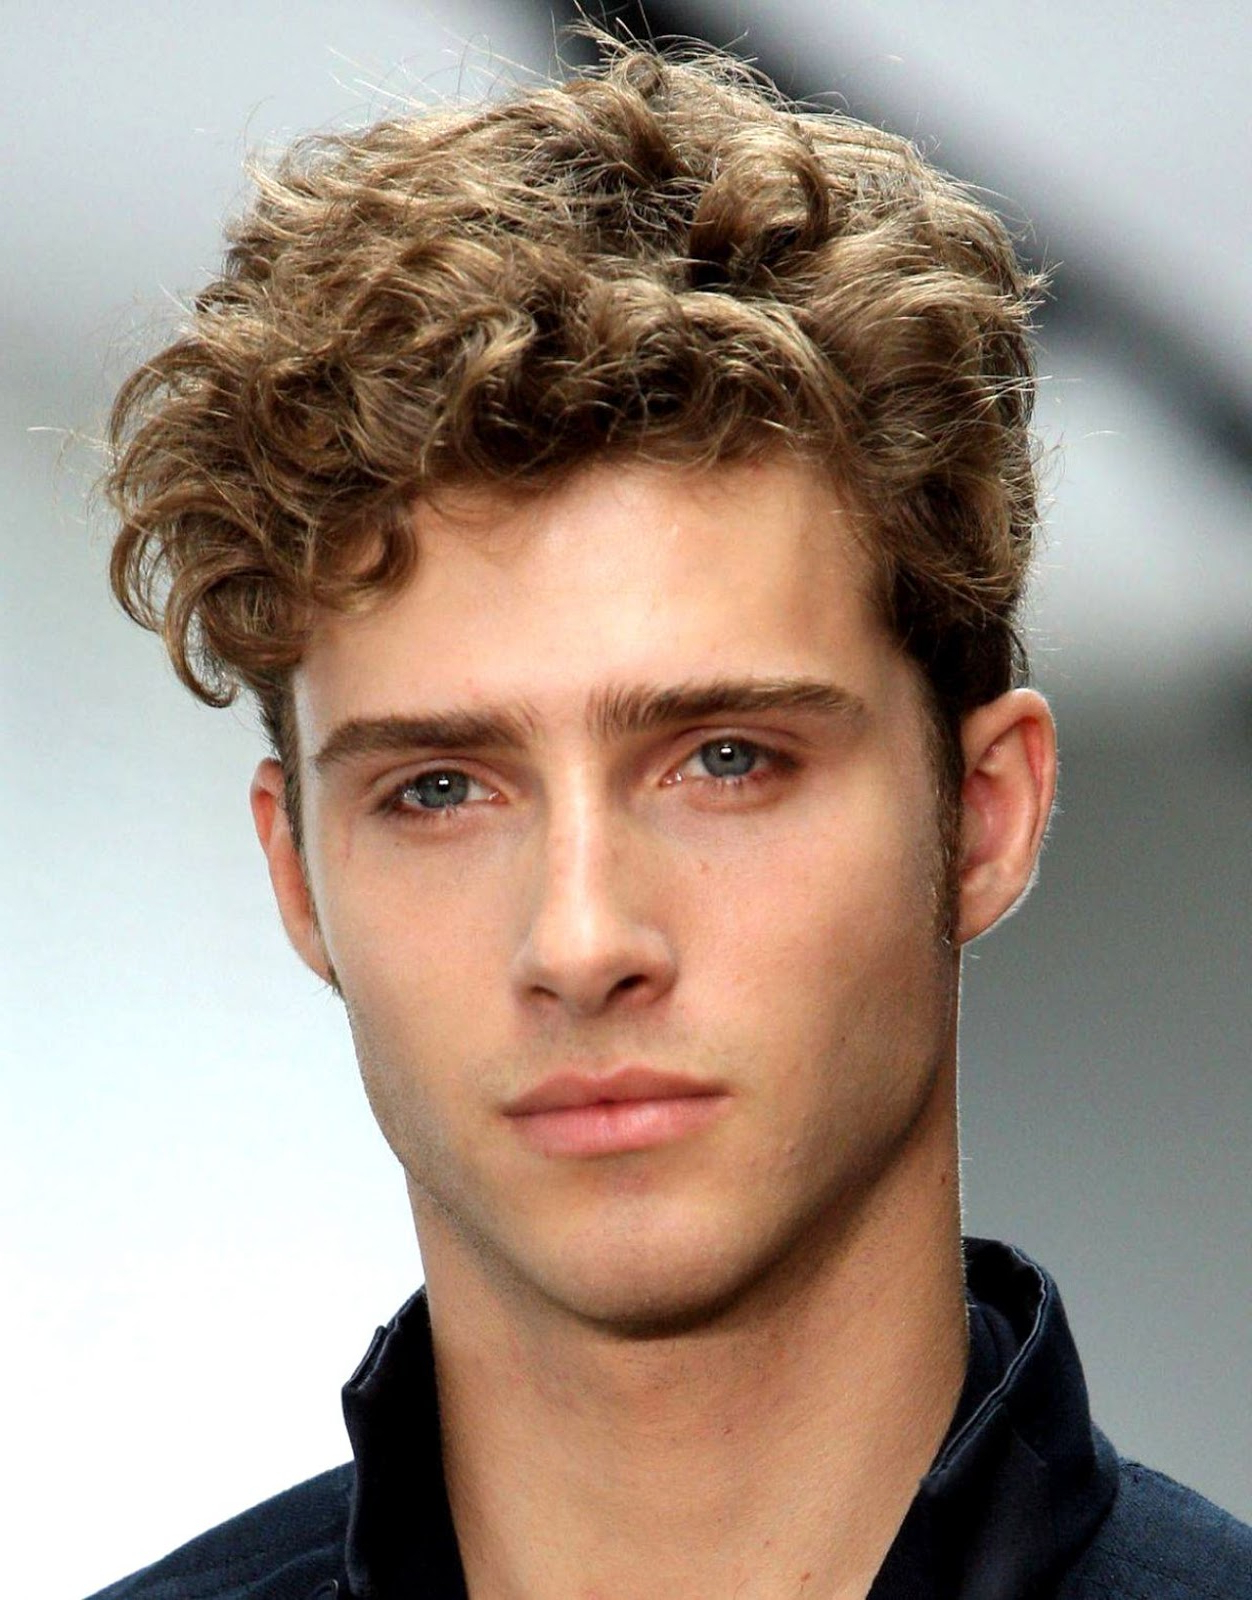 Fashionable Curly Style Faux Hawk Hairstyles Regarding Faux Hawk: 40 Best Faux Hawk (Fohawk) Fade Hairstyles For Men – Atoz (View 9 of 20)